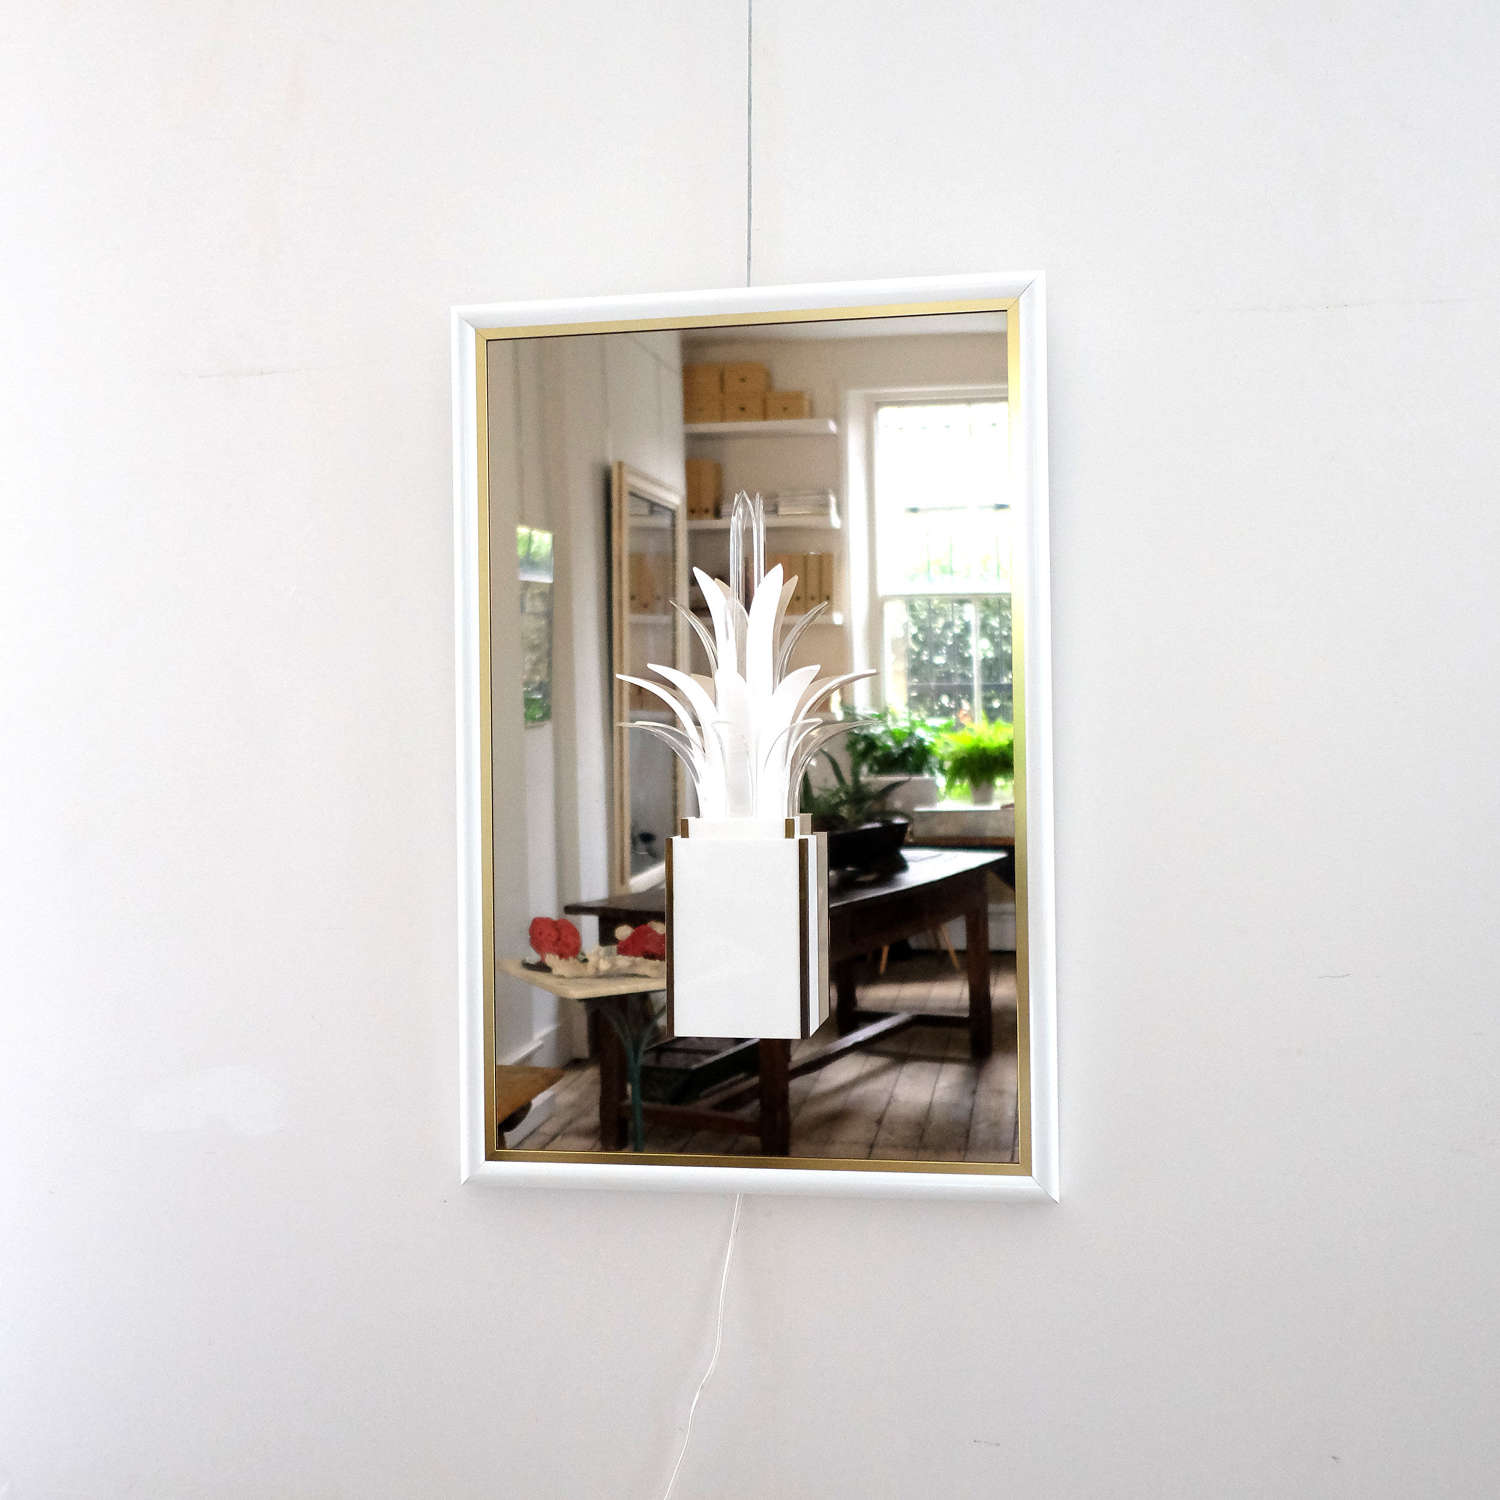 UNUSUAL PALM TREE LIGHT AND MIRROR